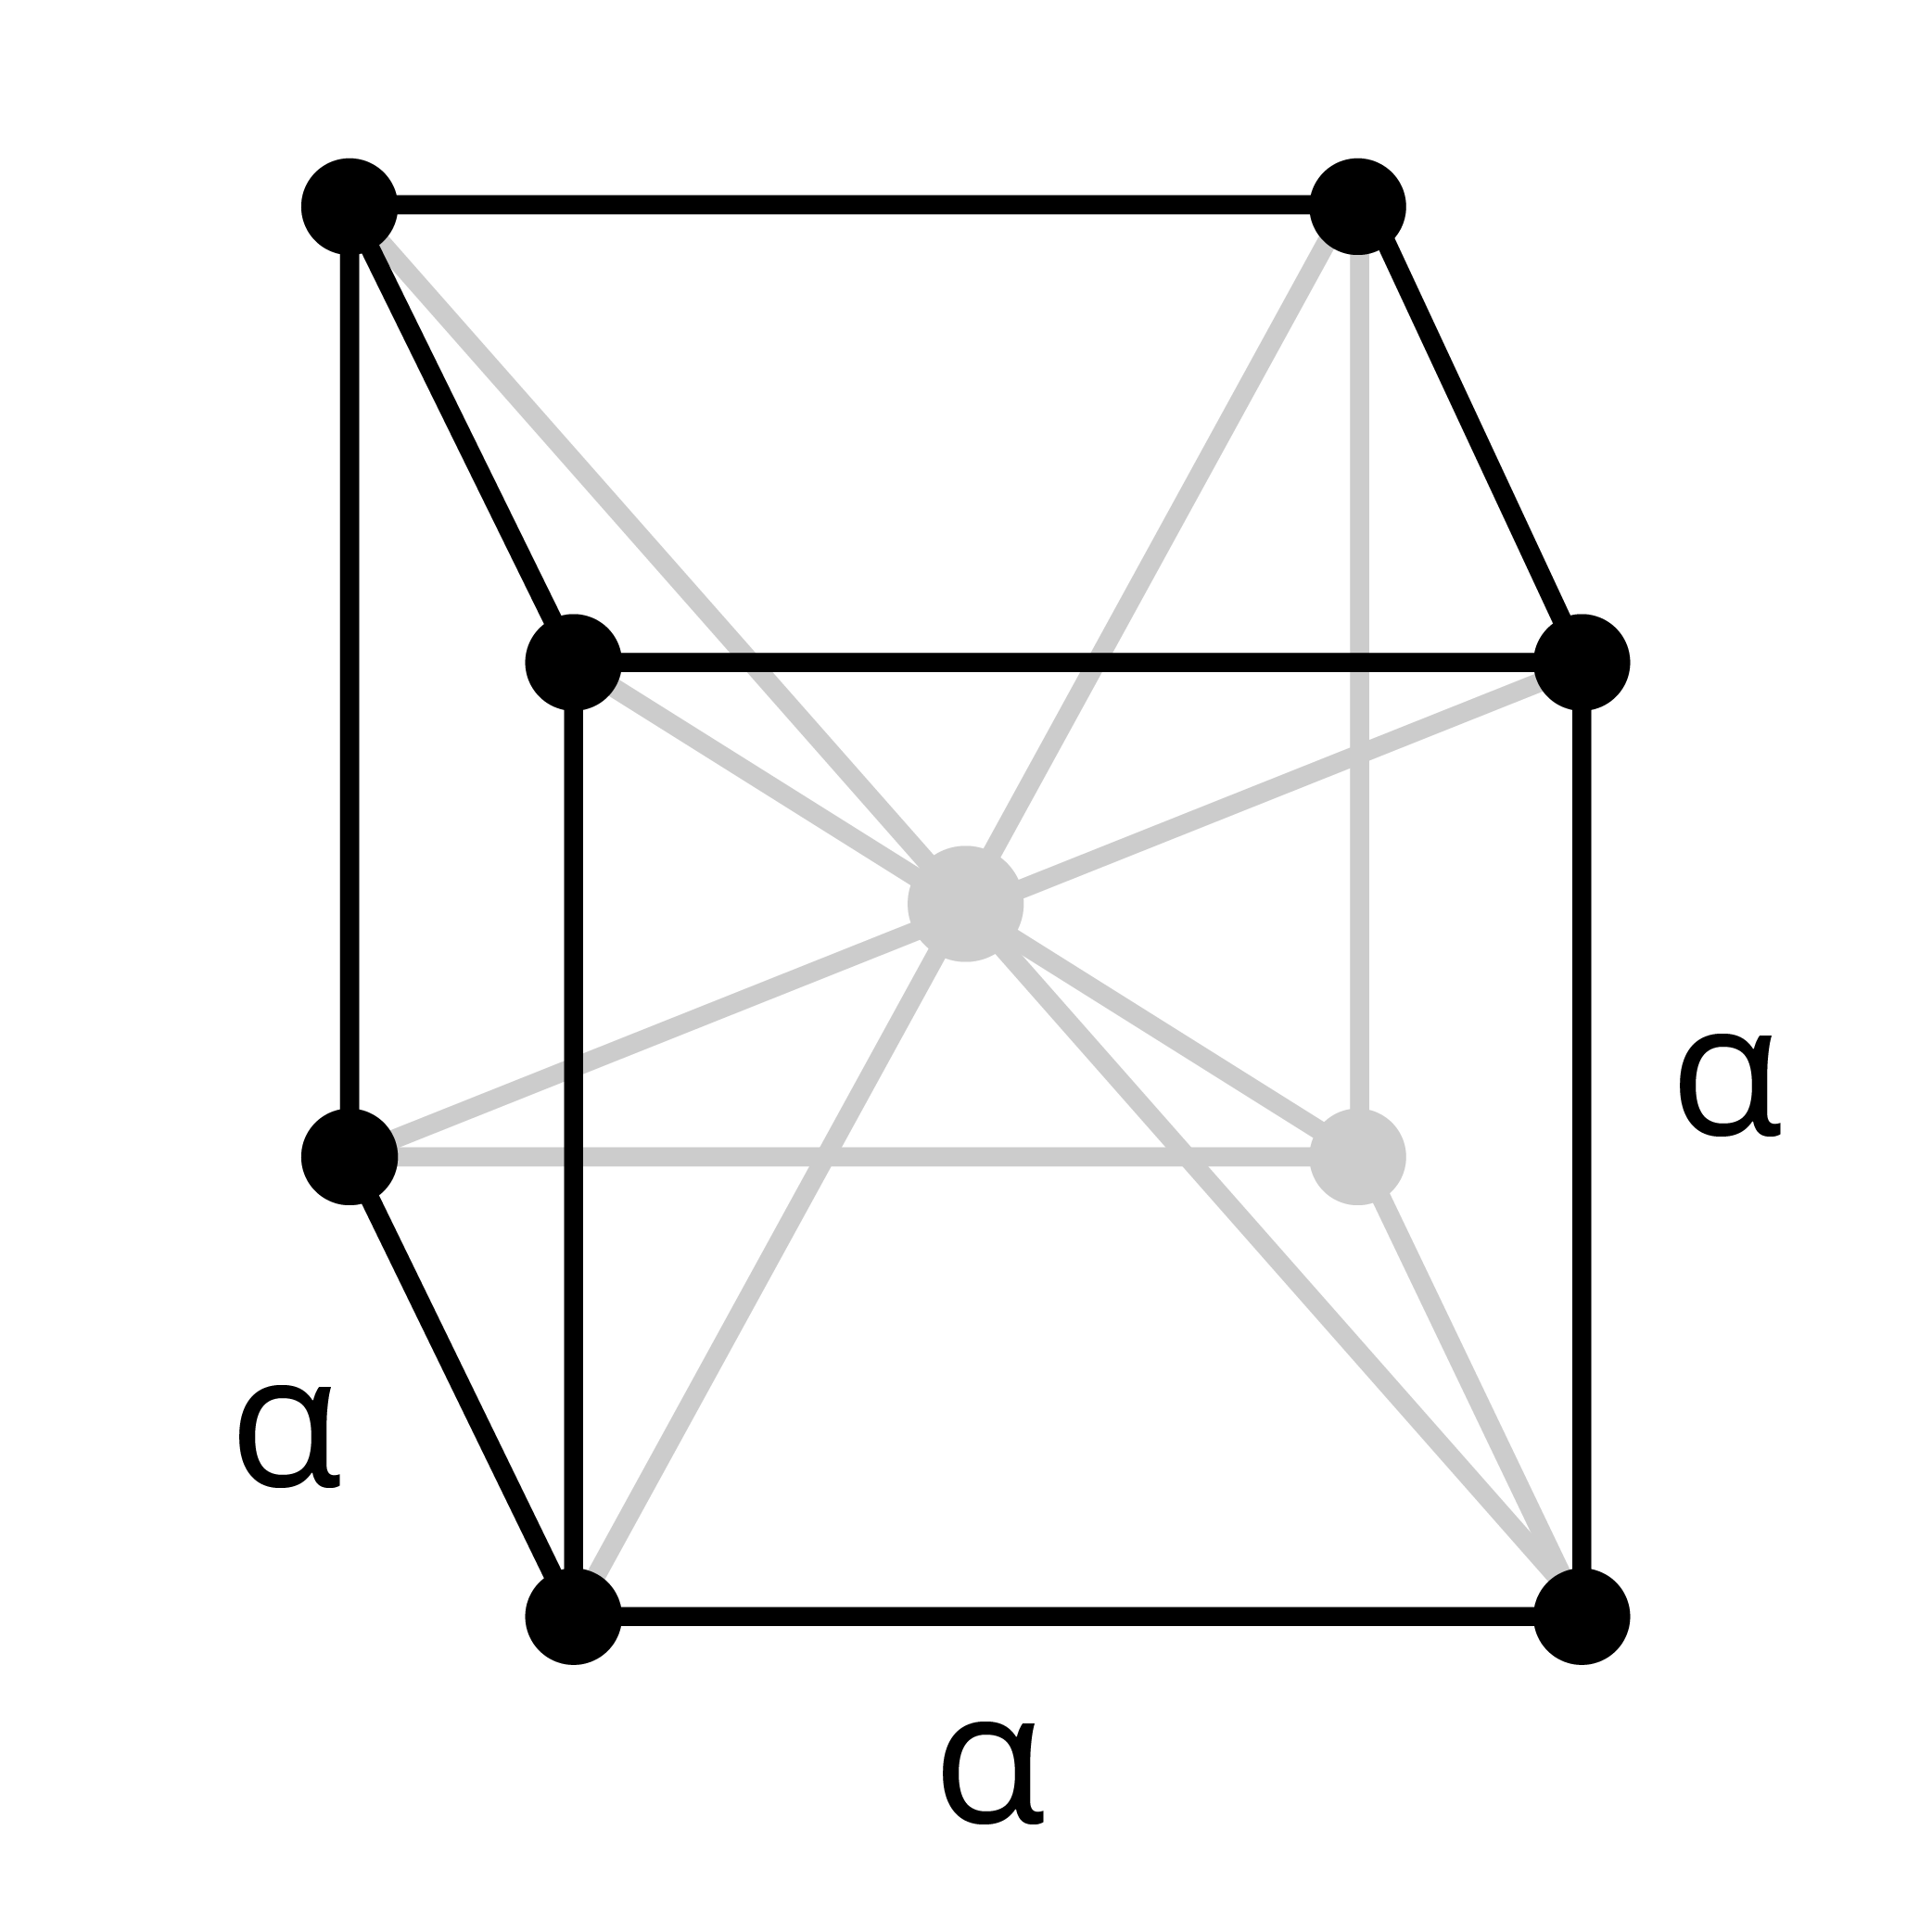 Wireframe shape of a body centered cubic structure with points at each corner and a single point nestled inside